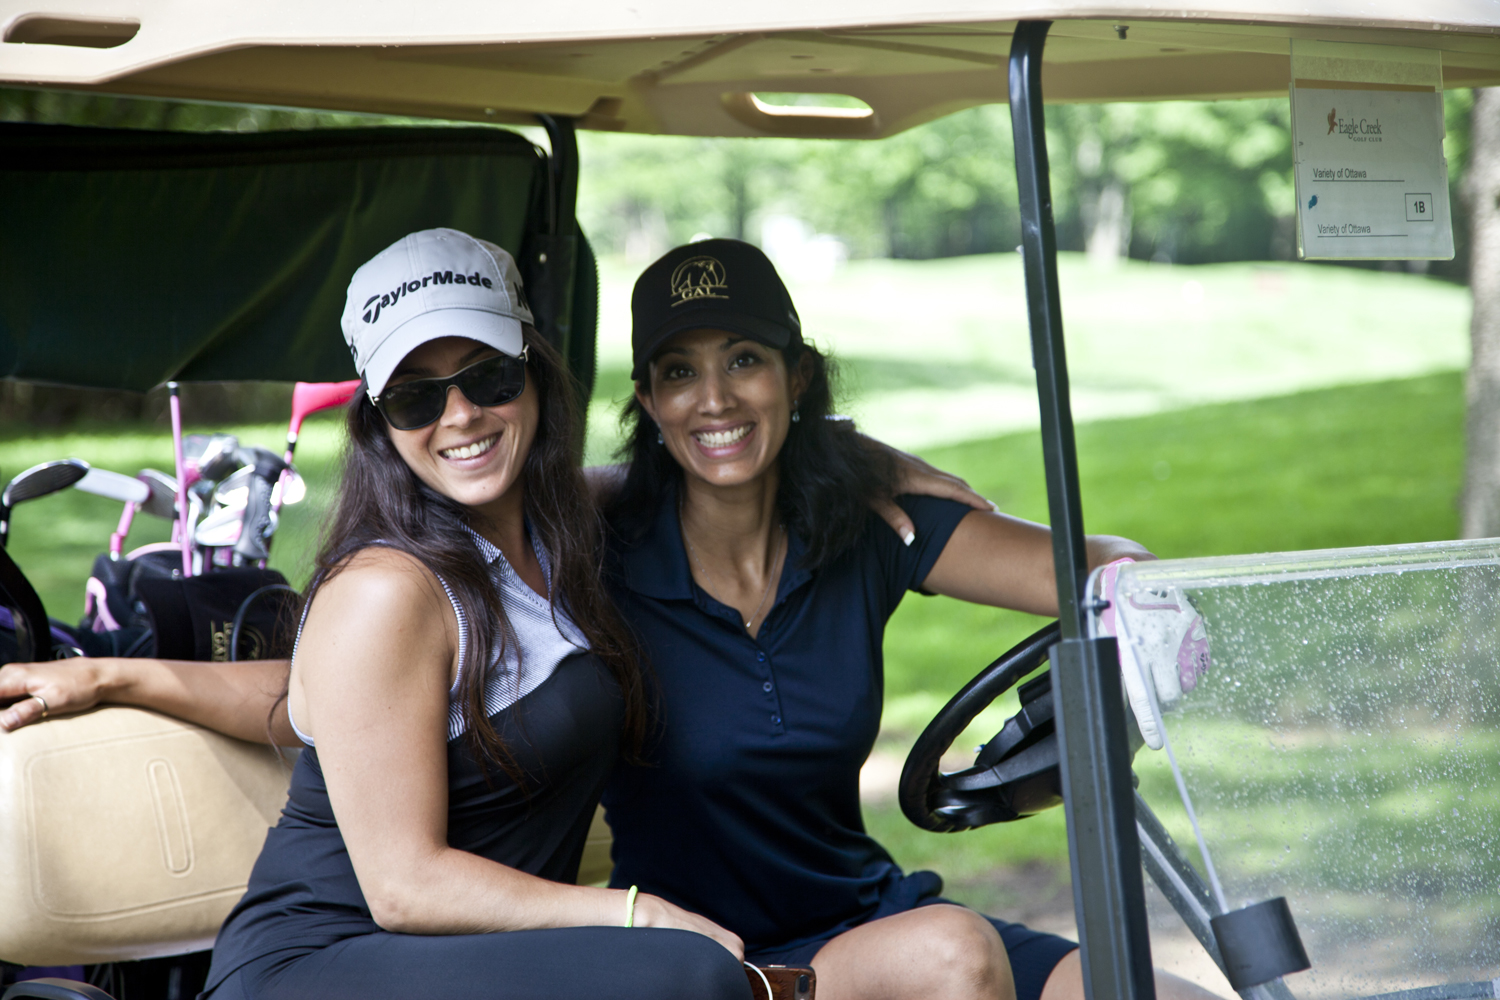 Two women in a golf cart, smiling.